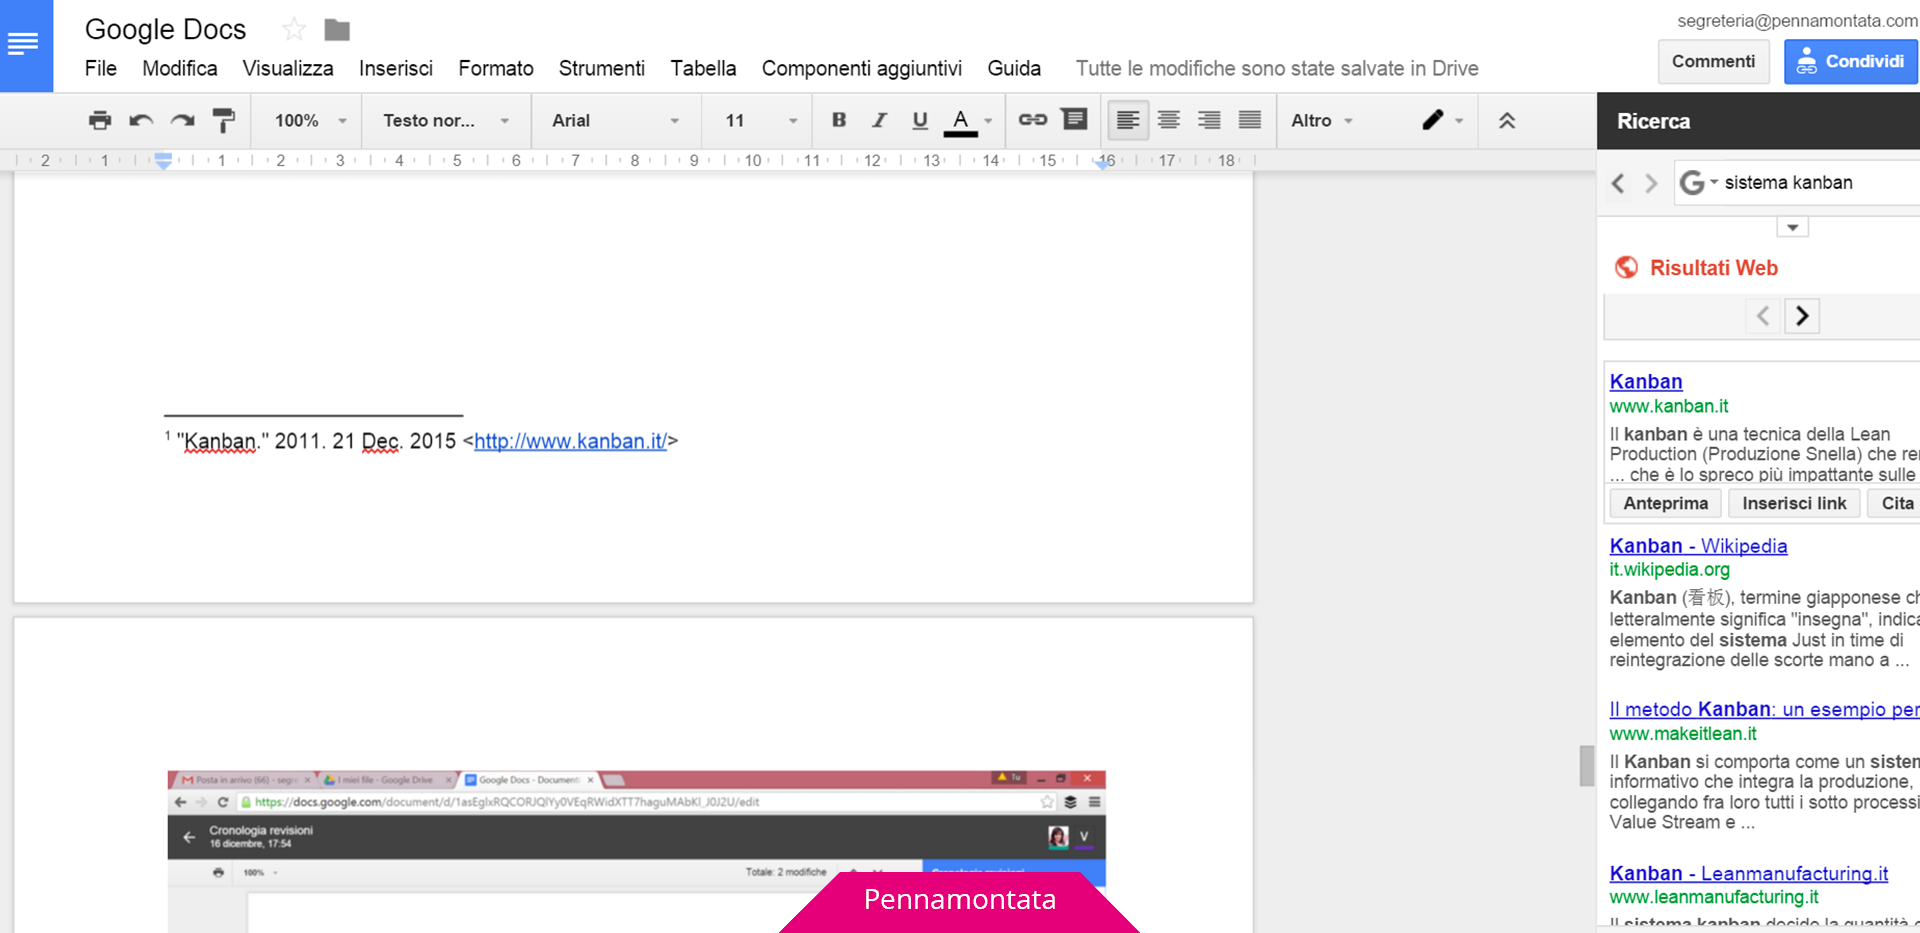 Google Doc come inserire note